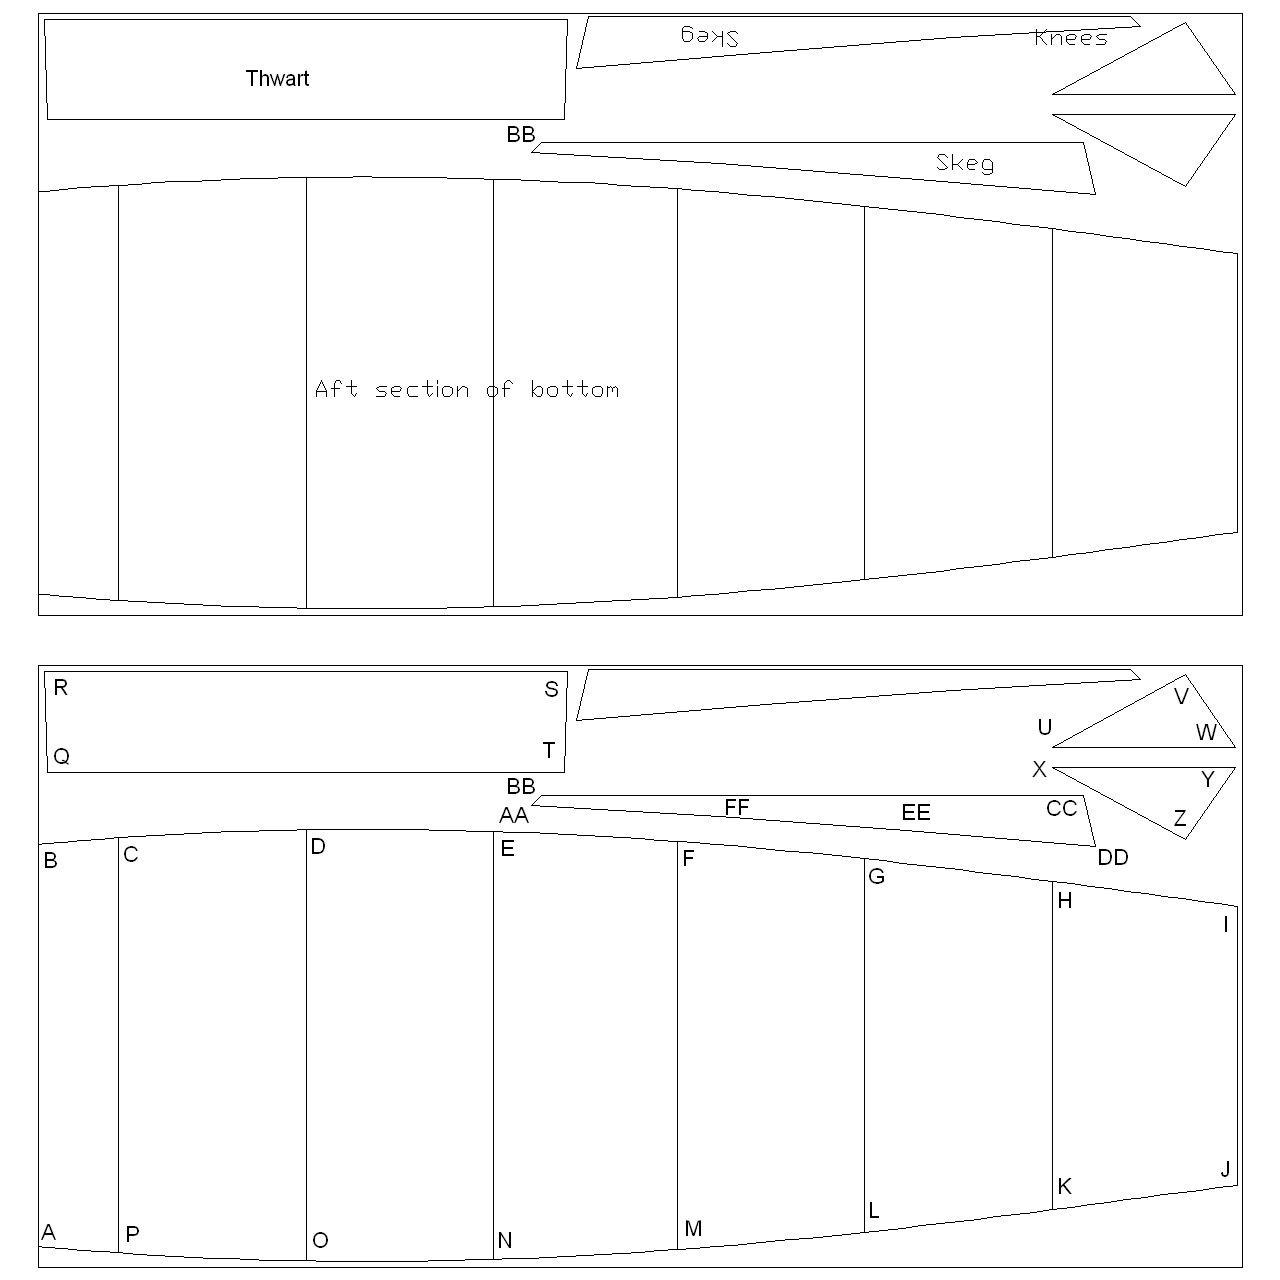 ... – drawings and coordinates for stitch and glue | intheboatshed.net